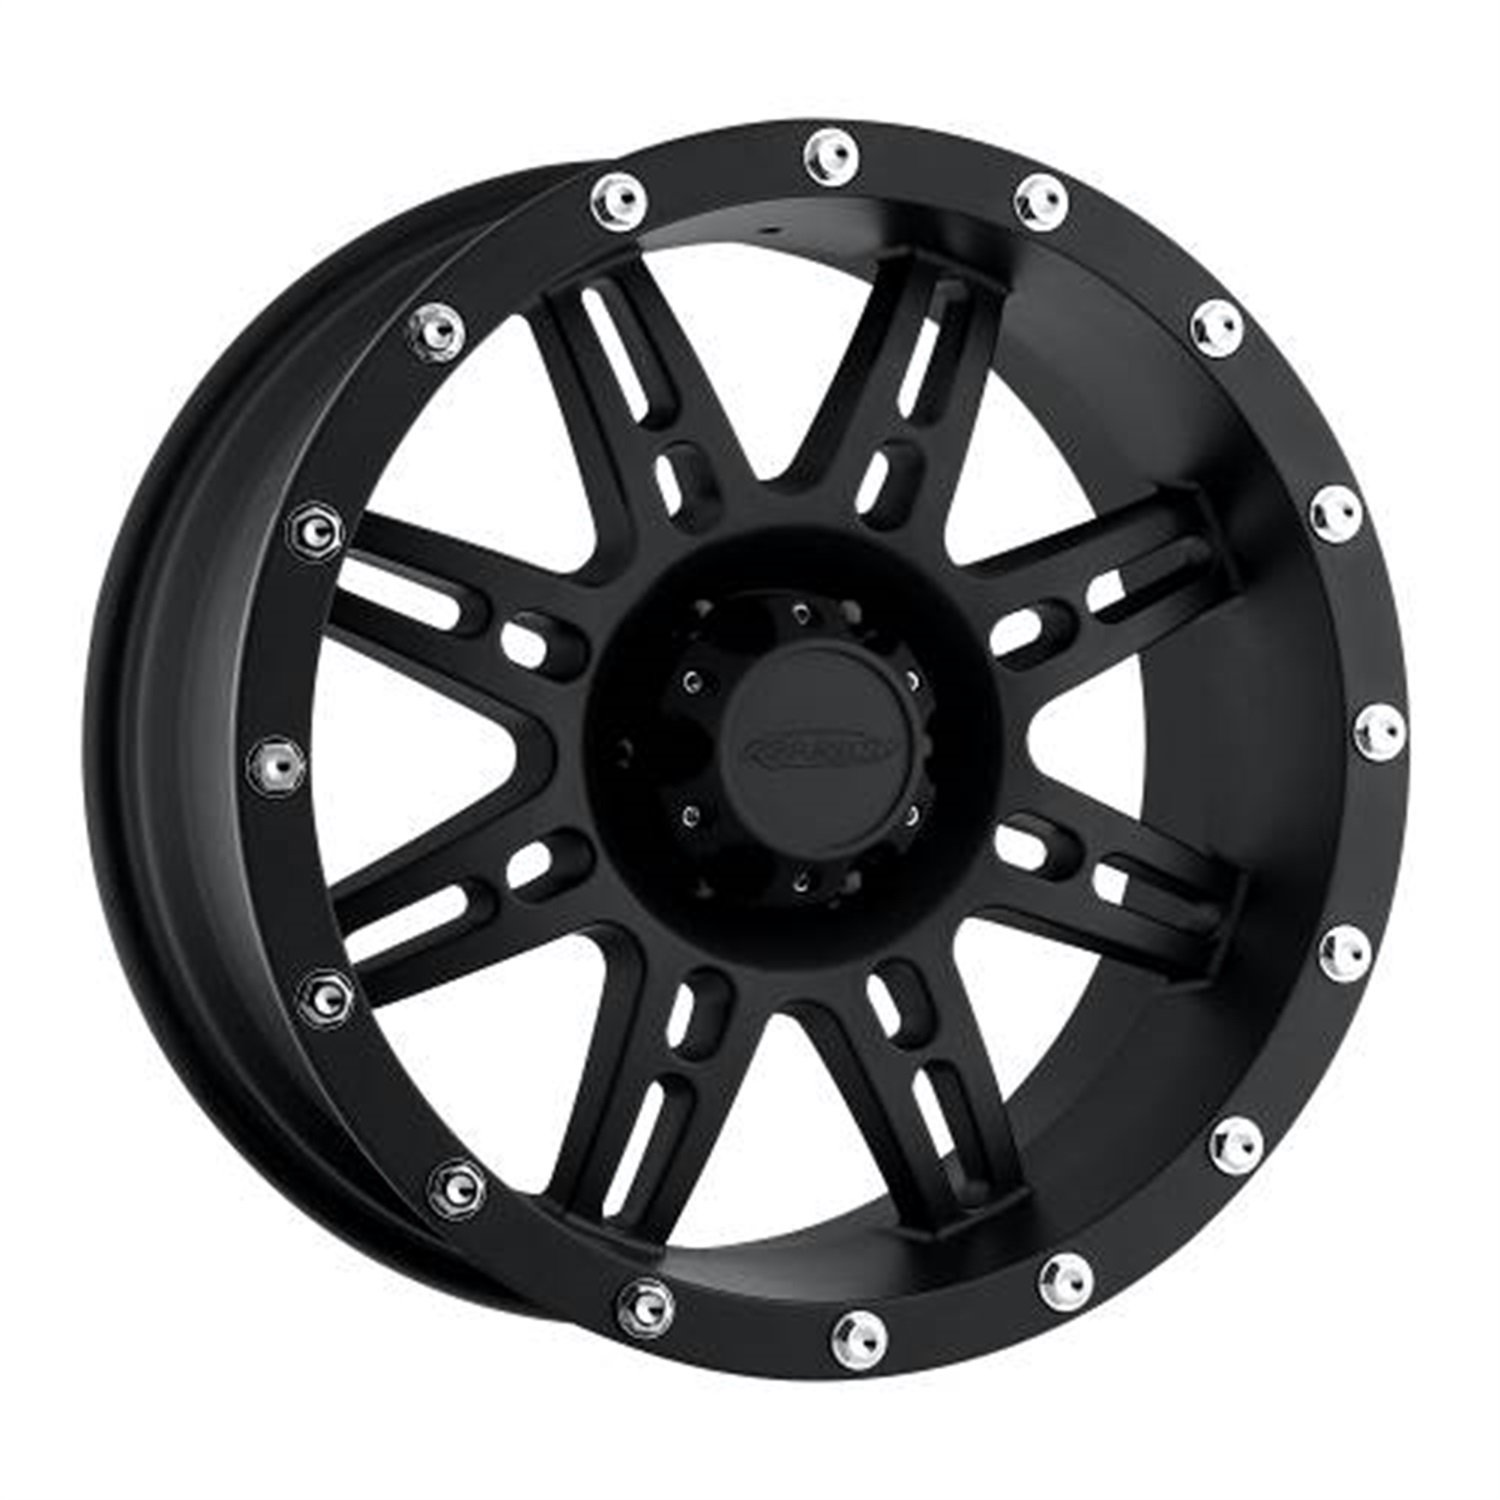 Pro Comp Alloys Series 31 Wheel with Flat Black Finish (16x8''/5x114.3mm)